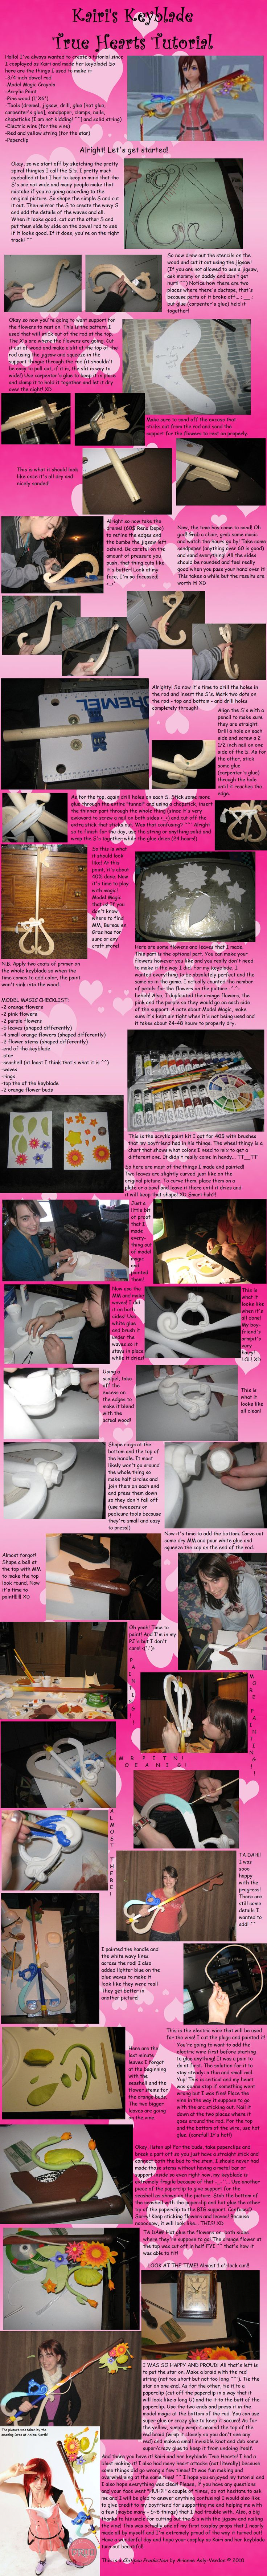 I've always wanted to make a keyblade, I imagine this process would work for most if not all keyblades. <Kairi's Keyblade Tutorial by SerenityPhoenix.deviantart.com on @deviantART>